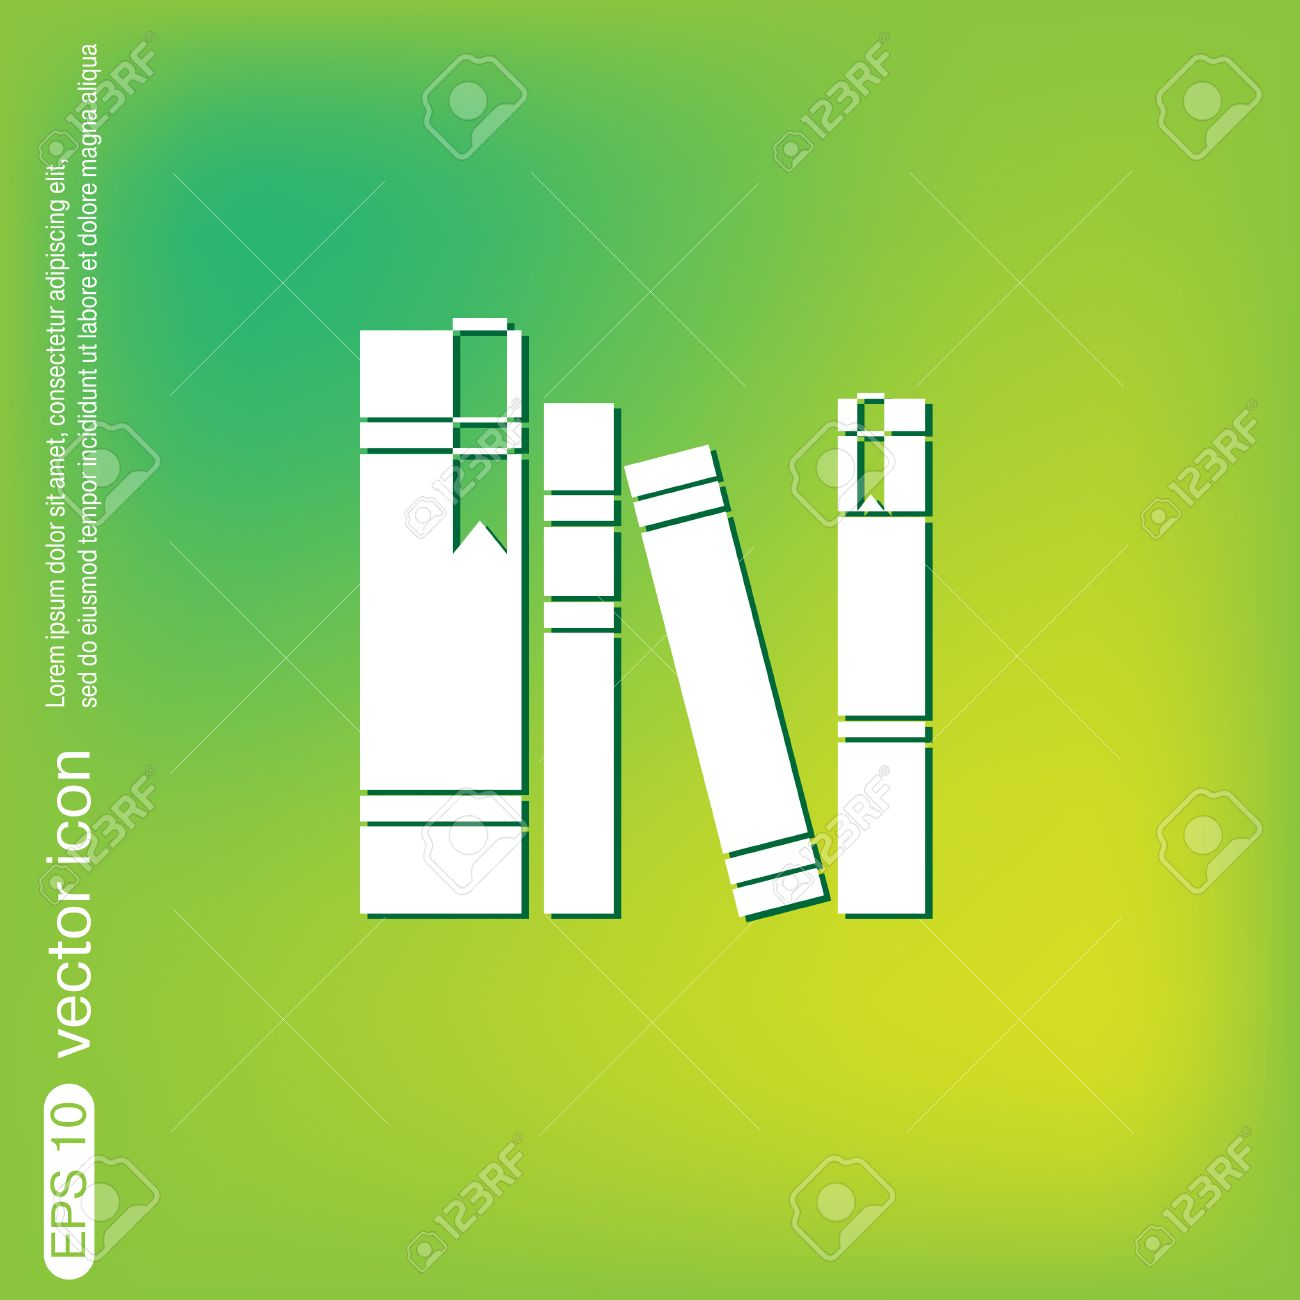 A symbol in literature book spine spines of books icon symbol of a book spine spines of books icon symbol of a science and vector book spine spines of animal symbolism biocorpaavc Gallery